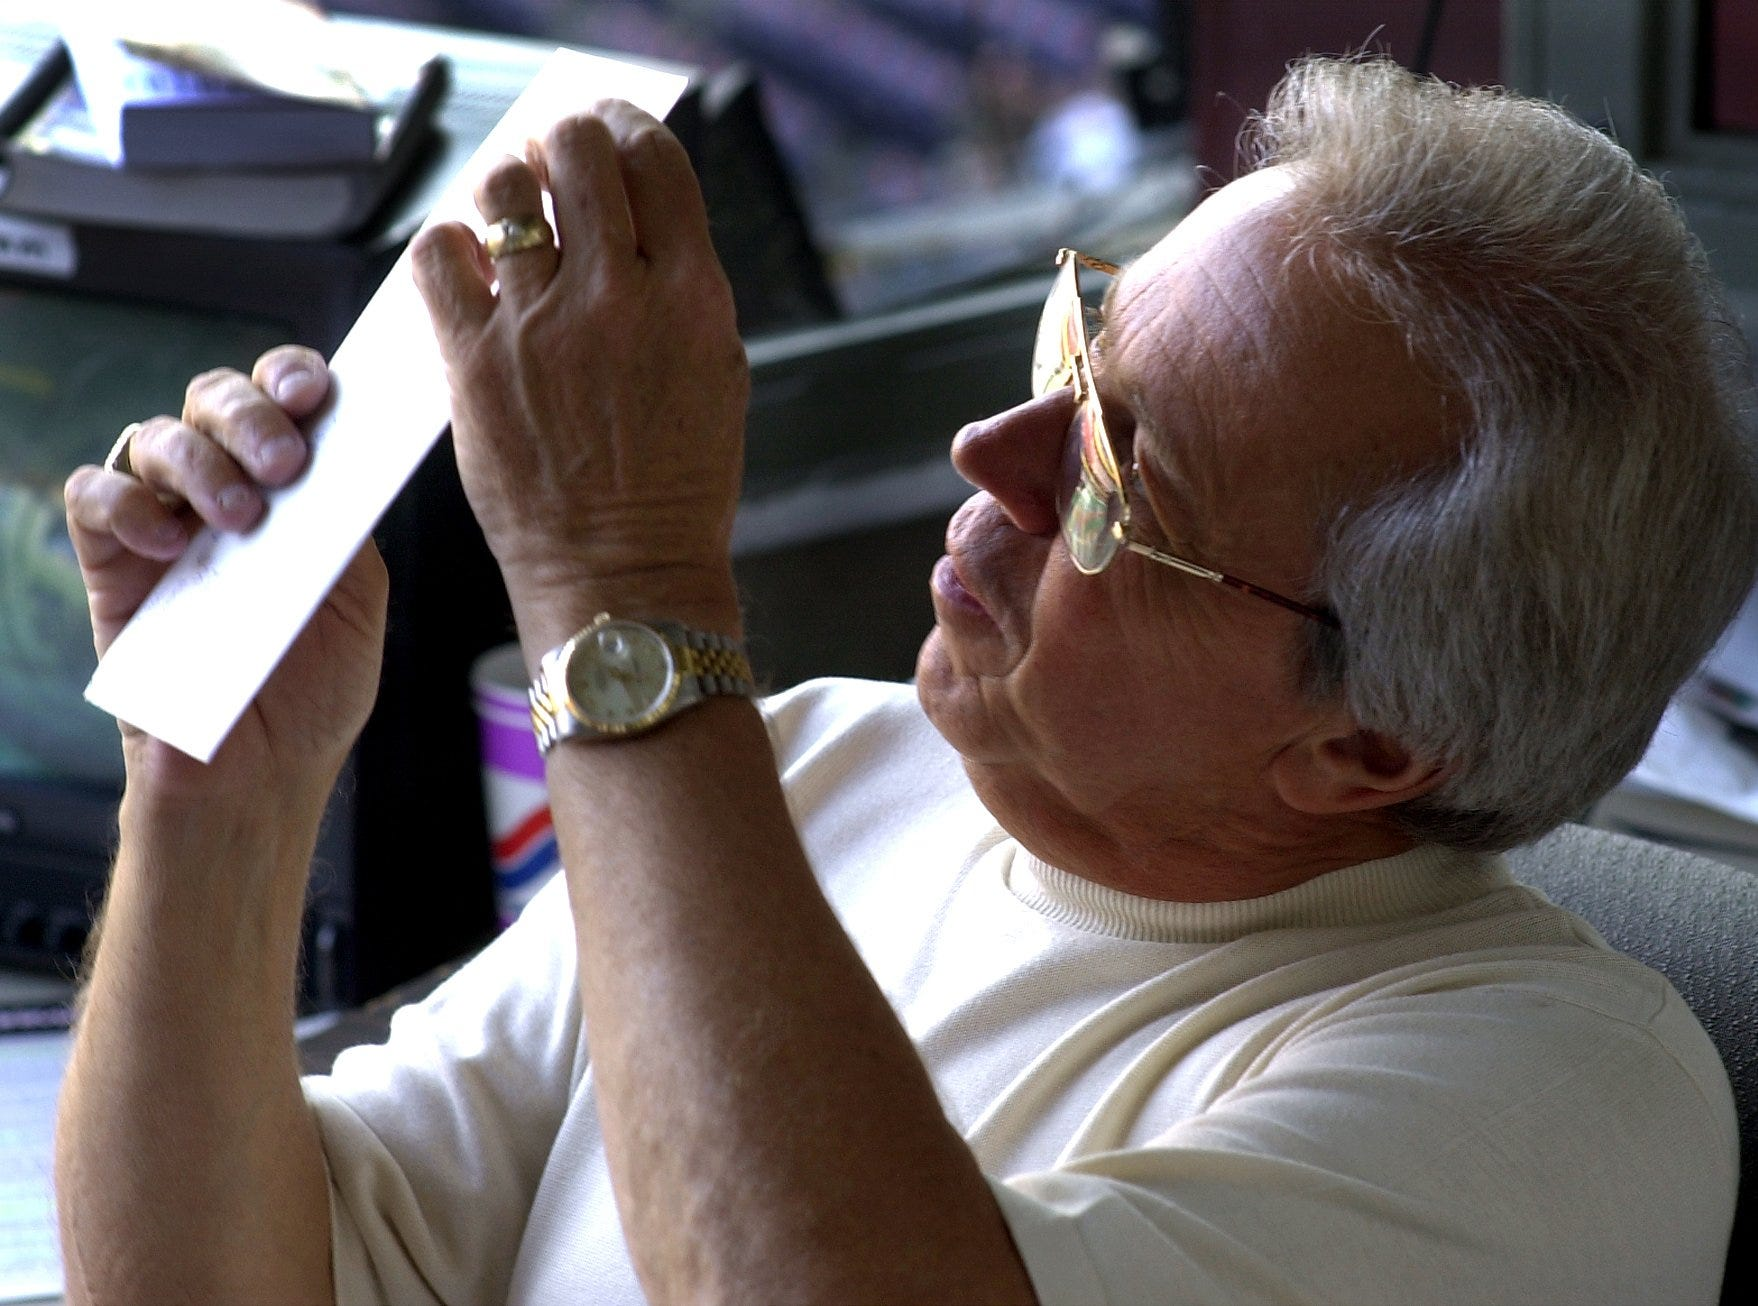 Text: 2000.0628.10.1--MARTY BRENNAMAN--nikon digital image--Marty Brennaman looks through his fan mail before the Reds-Cardinals game Wednesday.